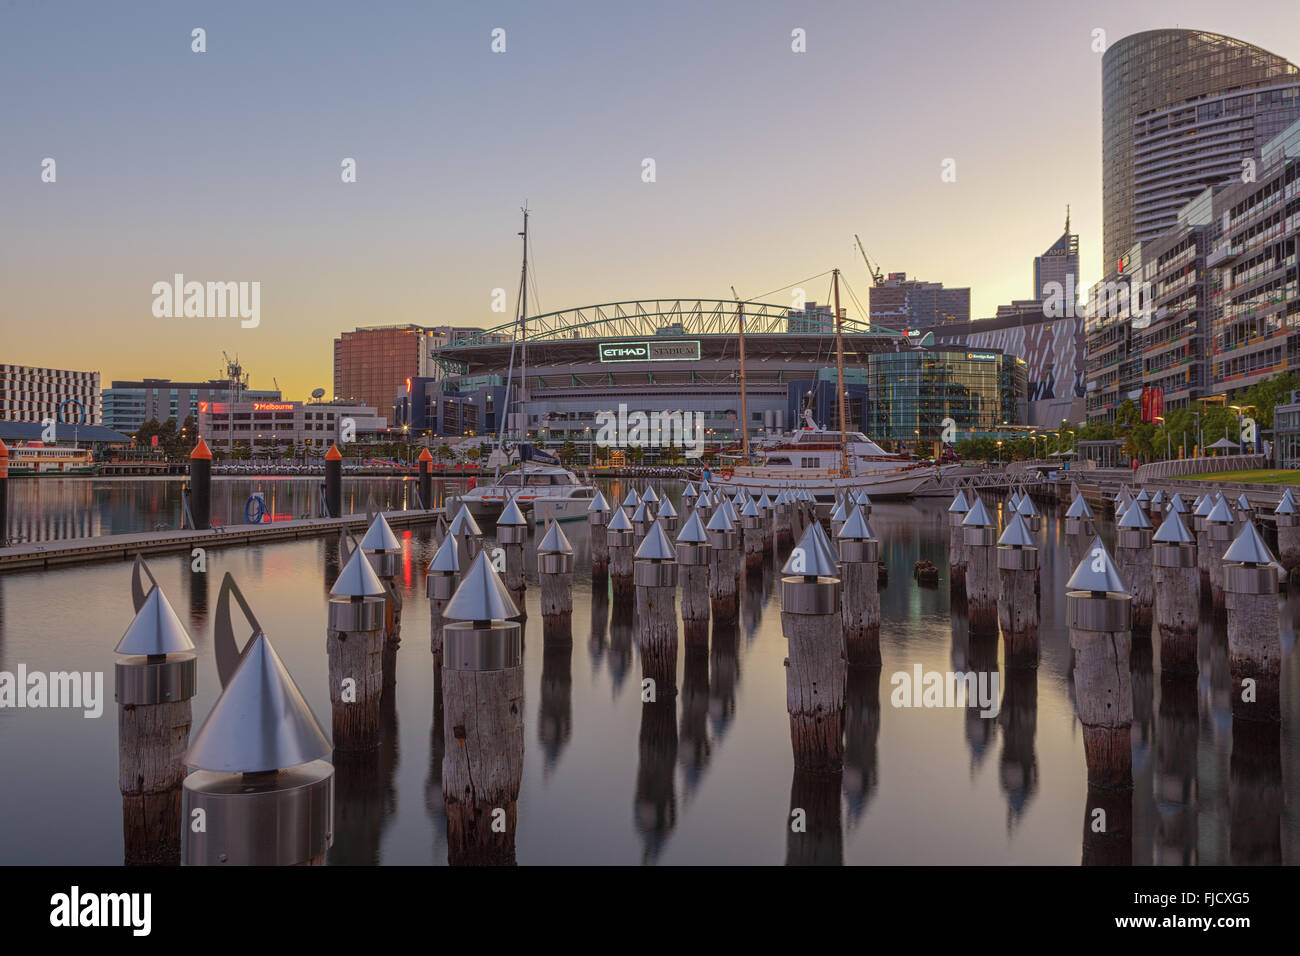 Melbourne, Australia - Feb 21 2016: Etihad Stadium viewed from Docklands waterfront with Yachts and bollards - Stock Image